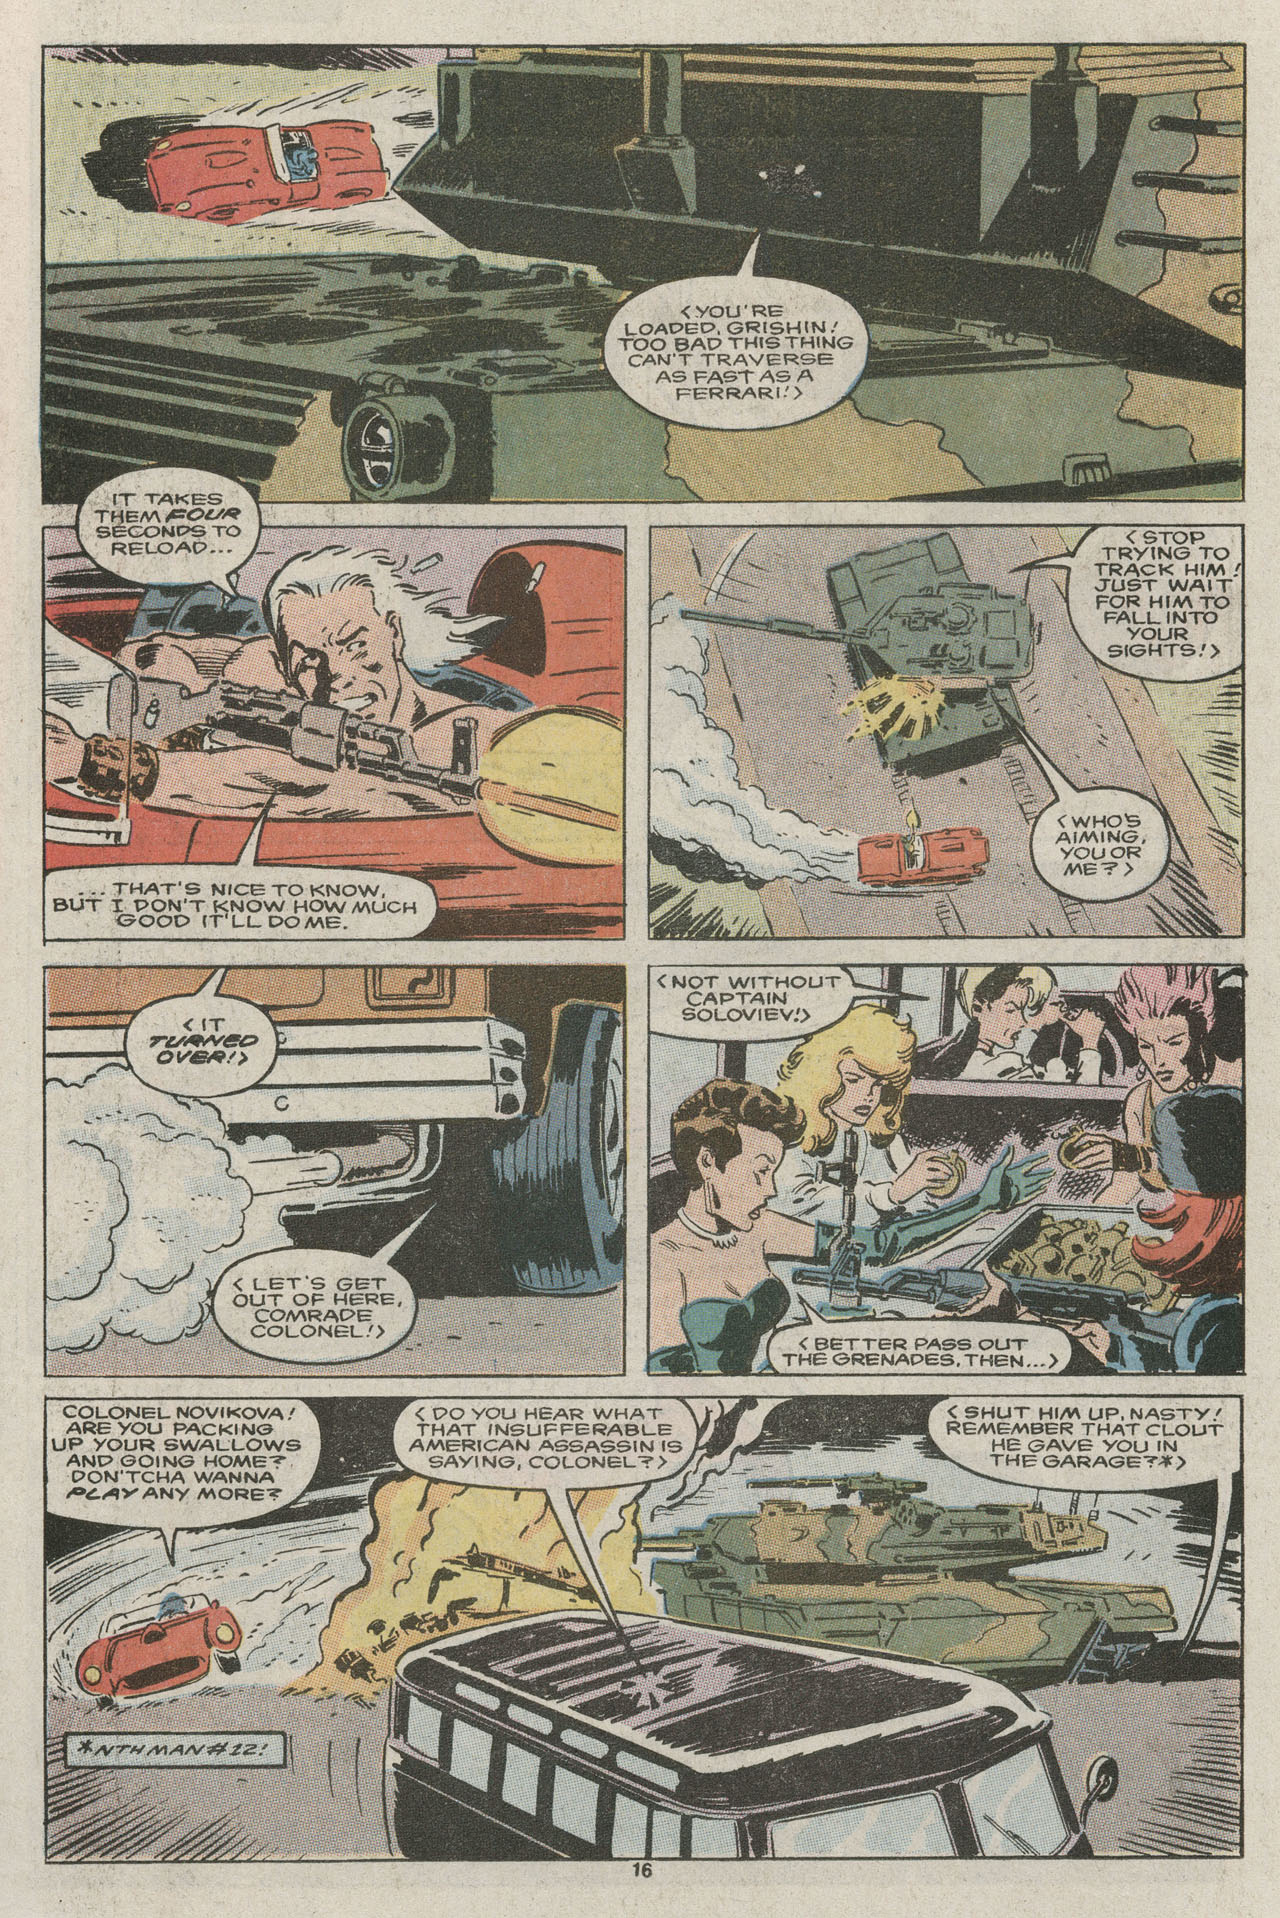 Read online Nth Man the Ultimate Ninja comic -  Issue #14 - 17